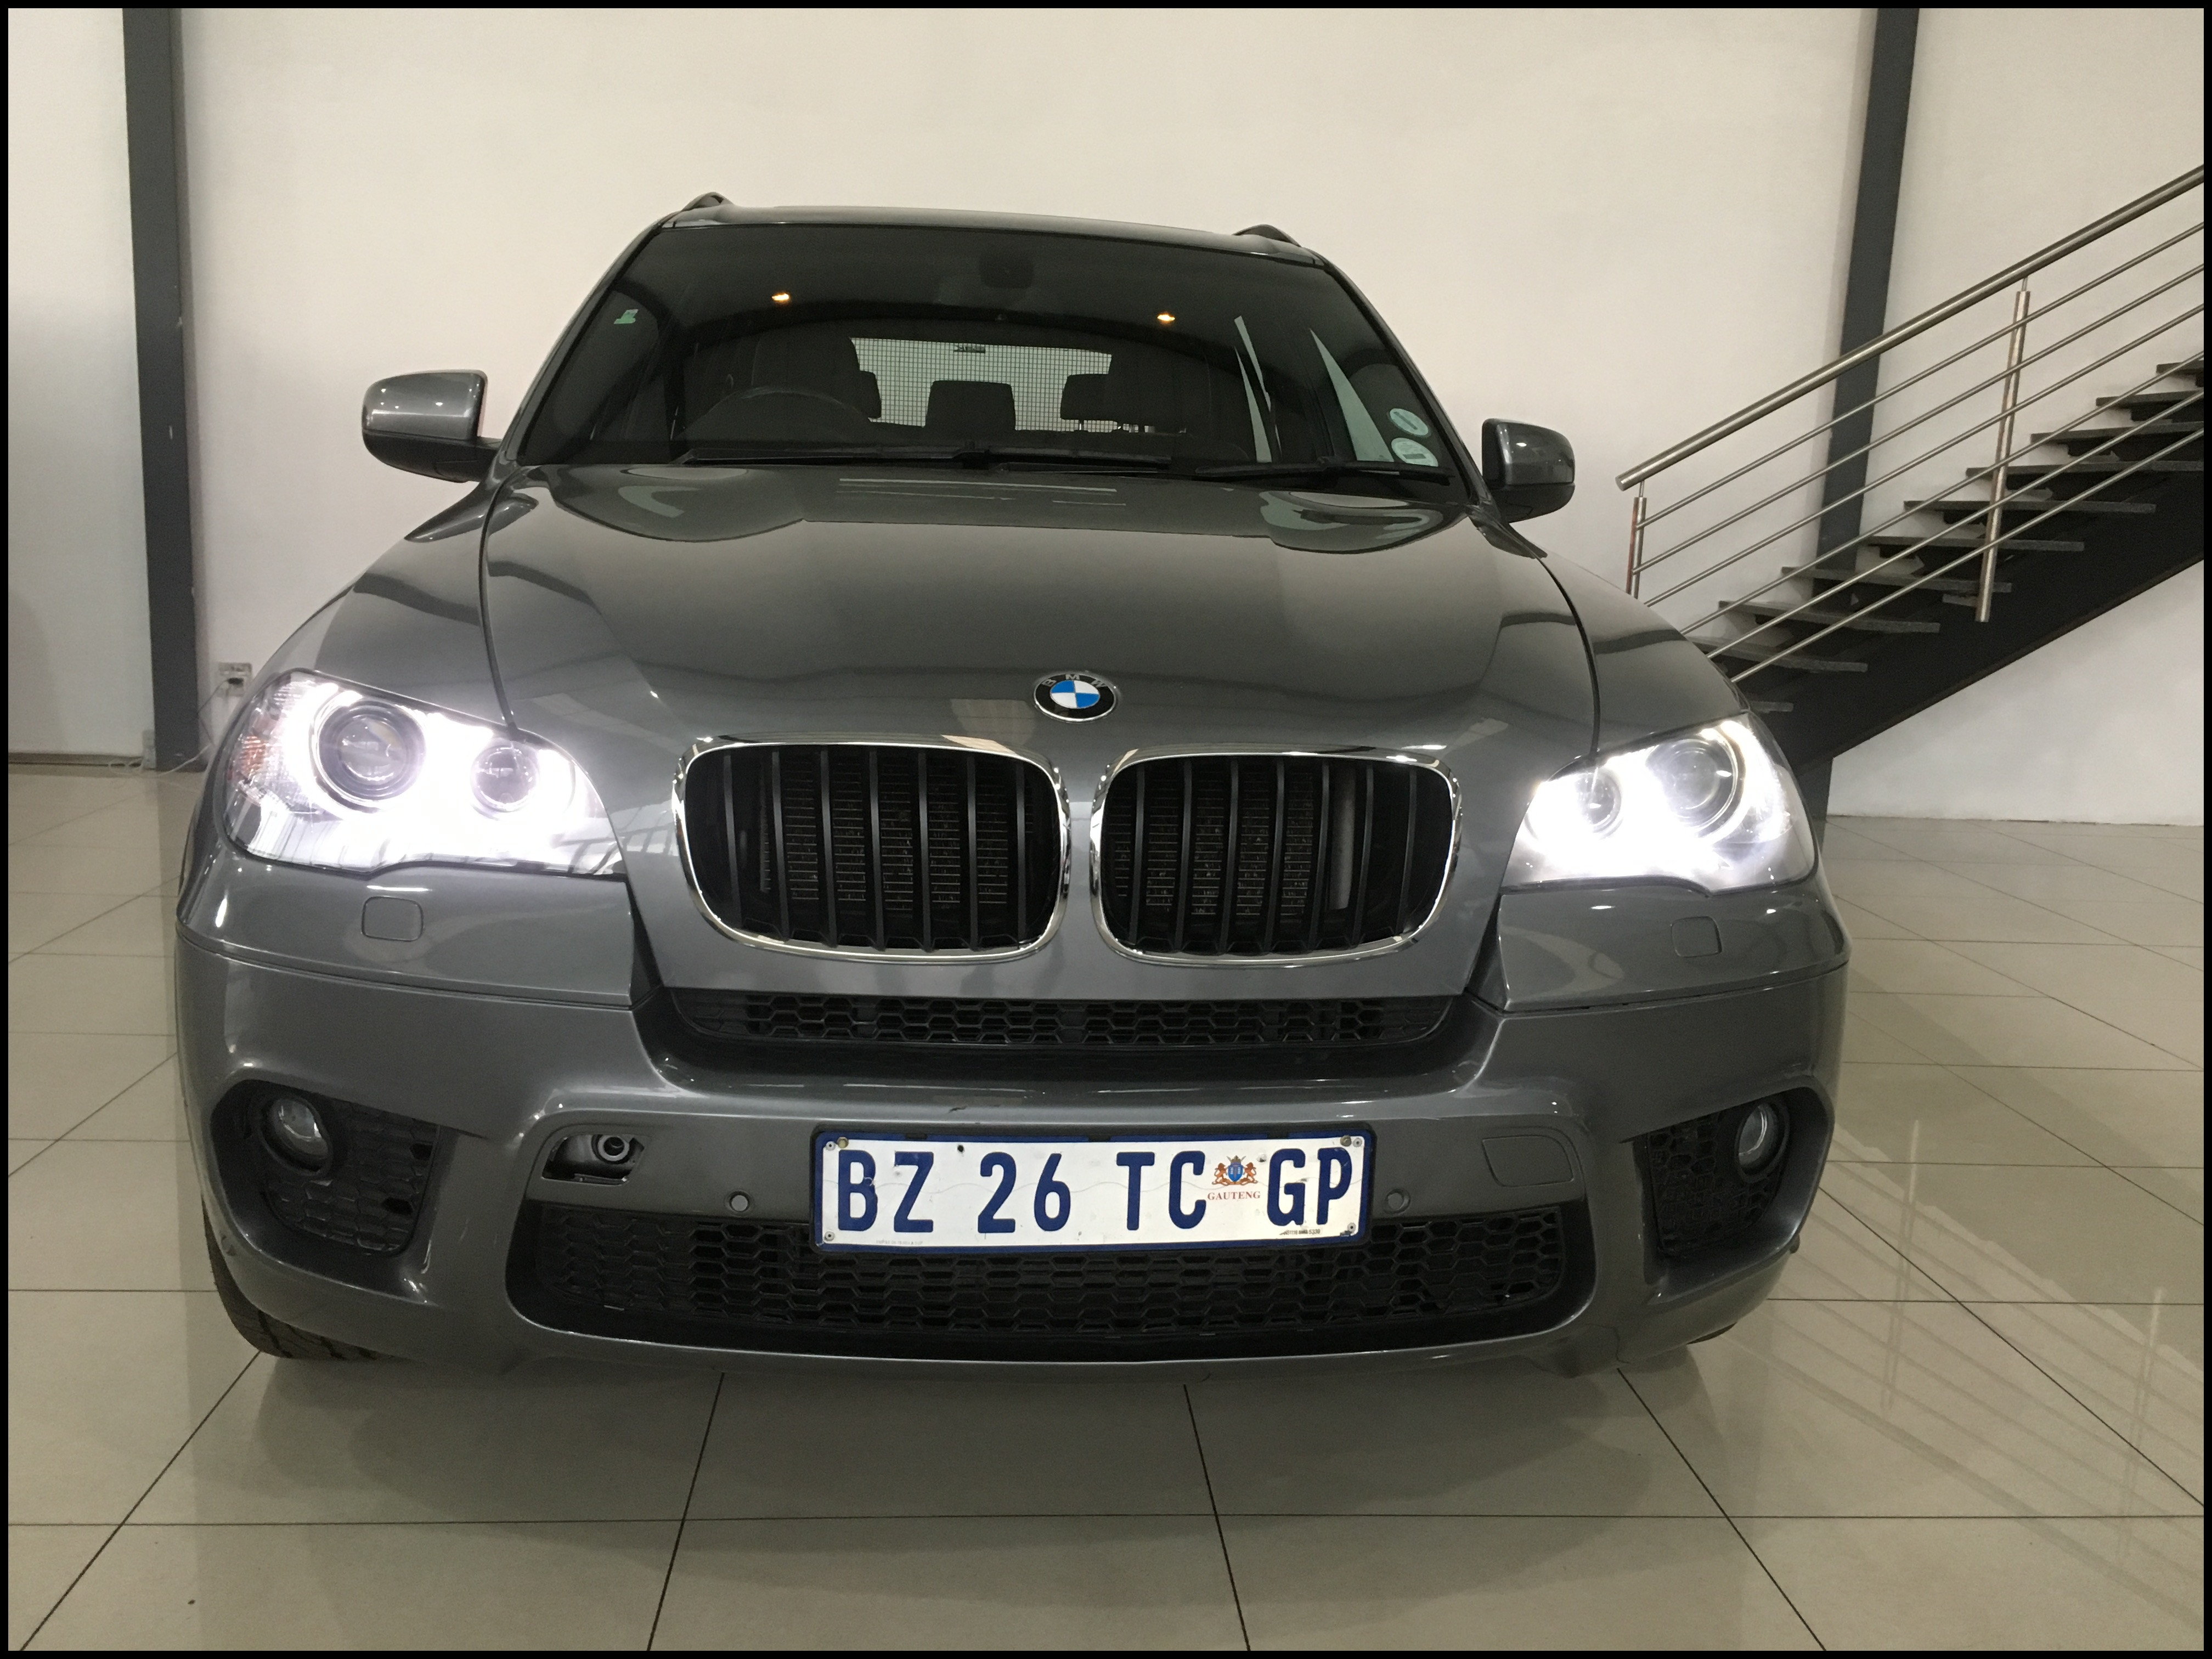 Bmw Service Center Near Me Elegant 2012 Bmw X5 Xdrive3 0d M Sport Bmw Service